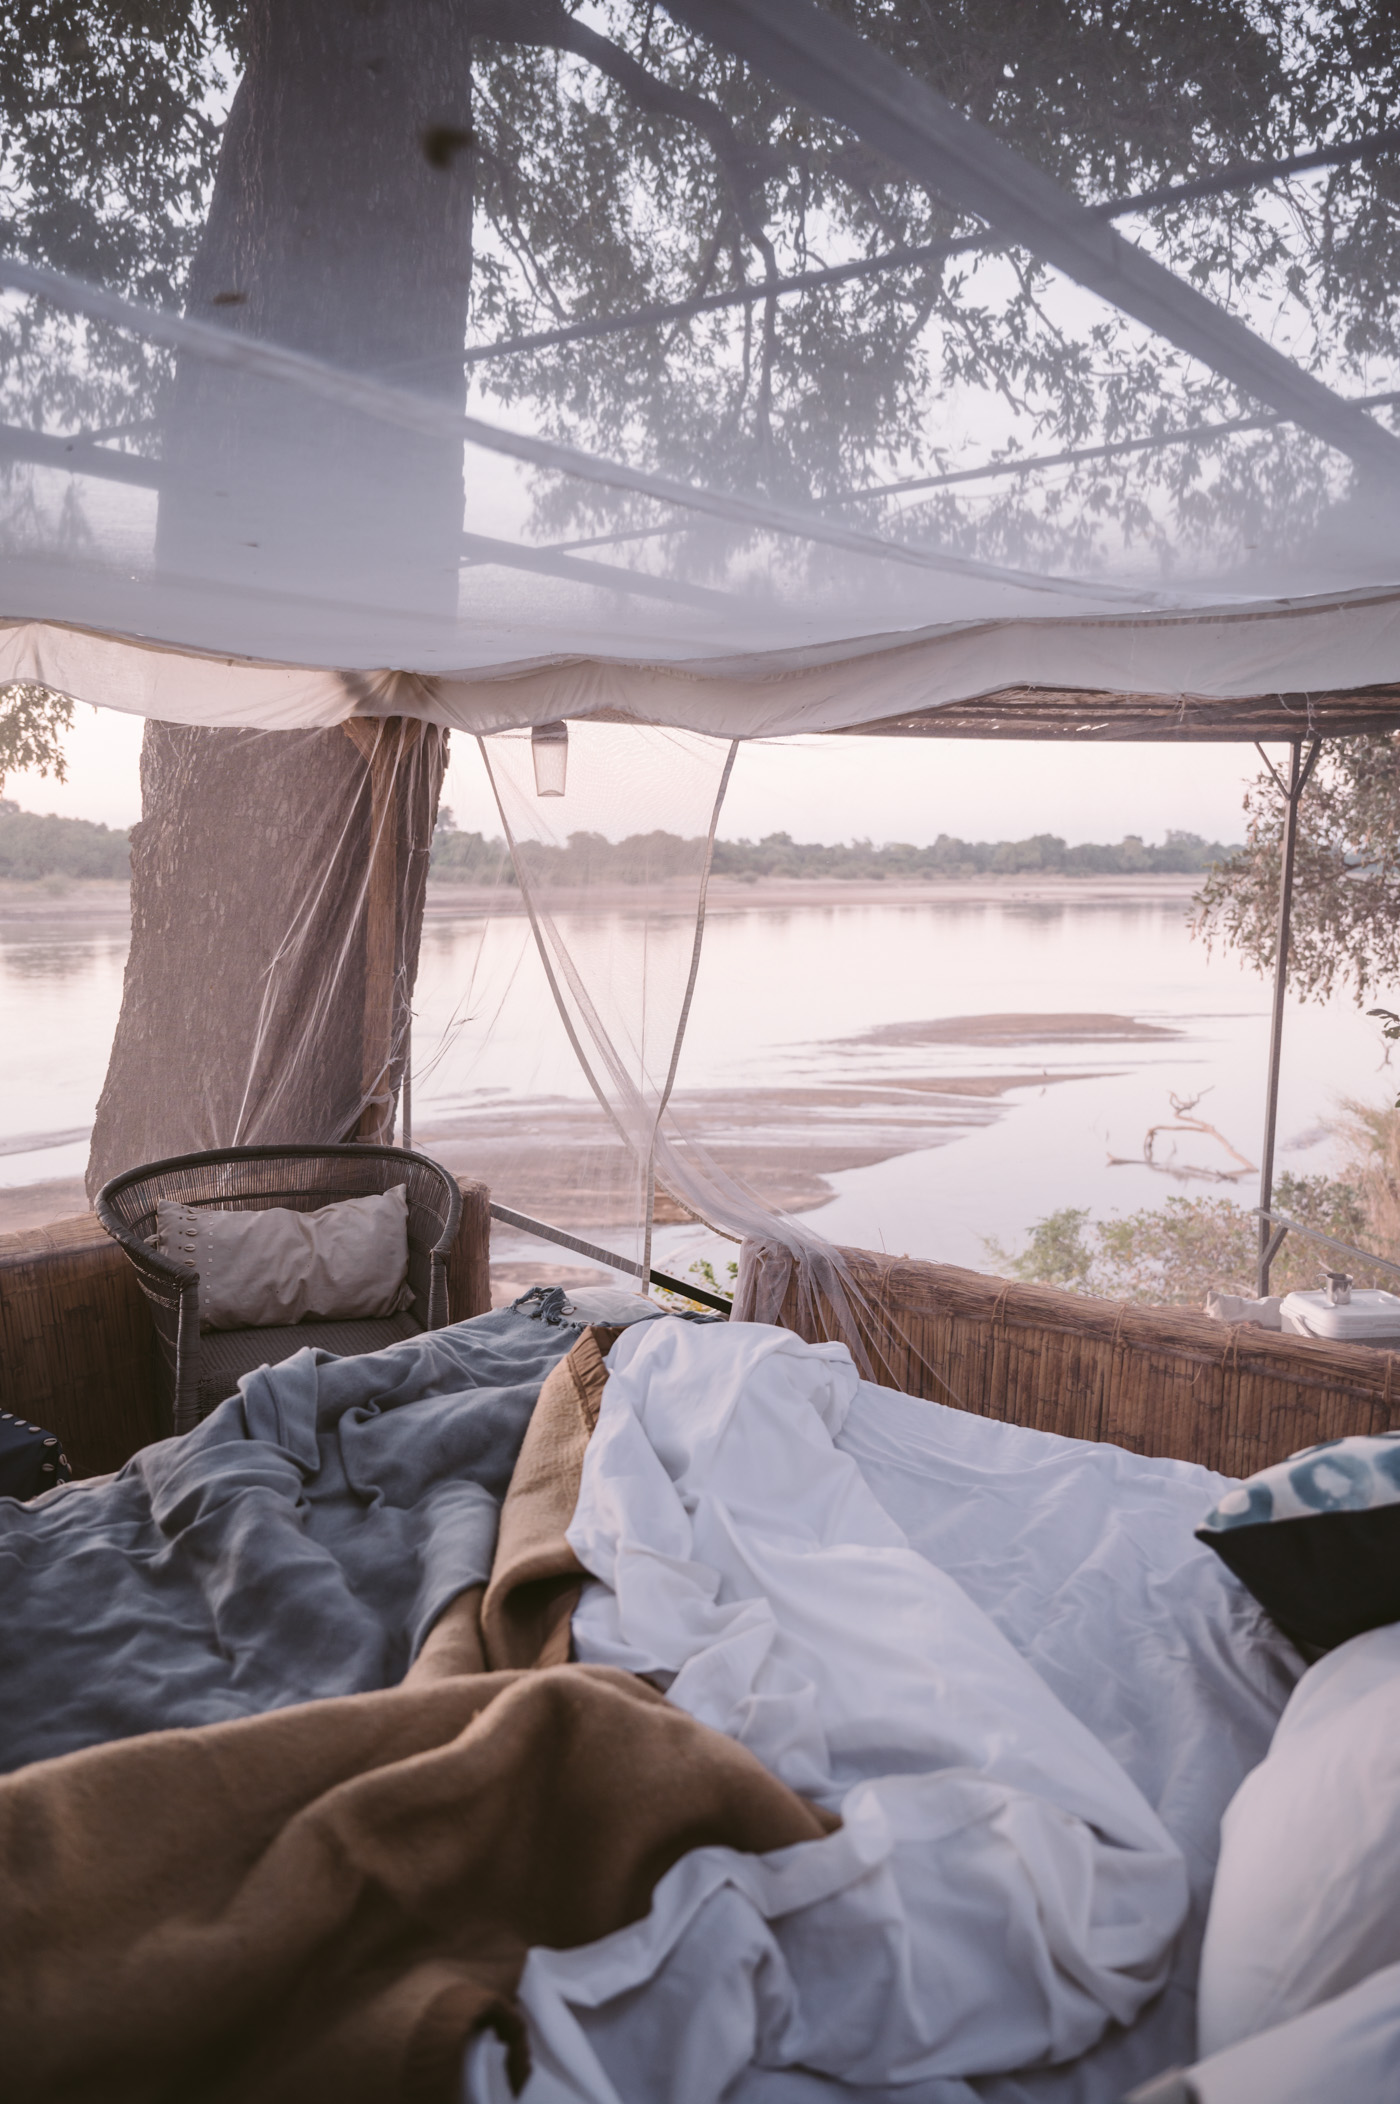 Elephant Hide star bed by Shenton Safaris in South Luangwa National Park Zambia